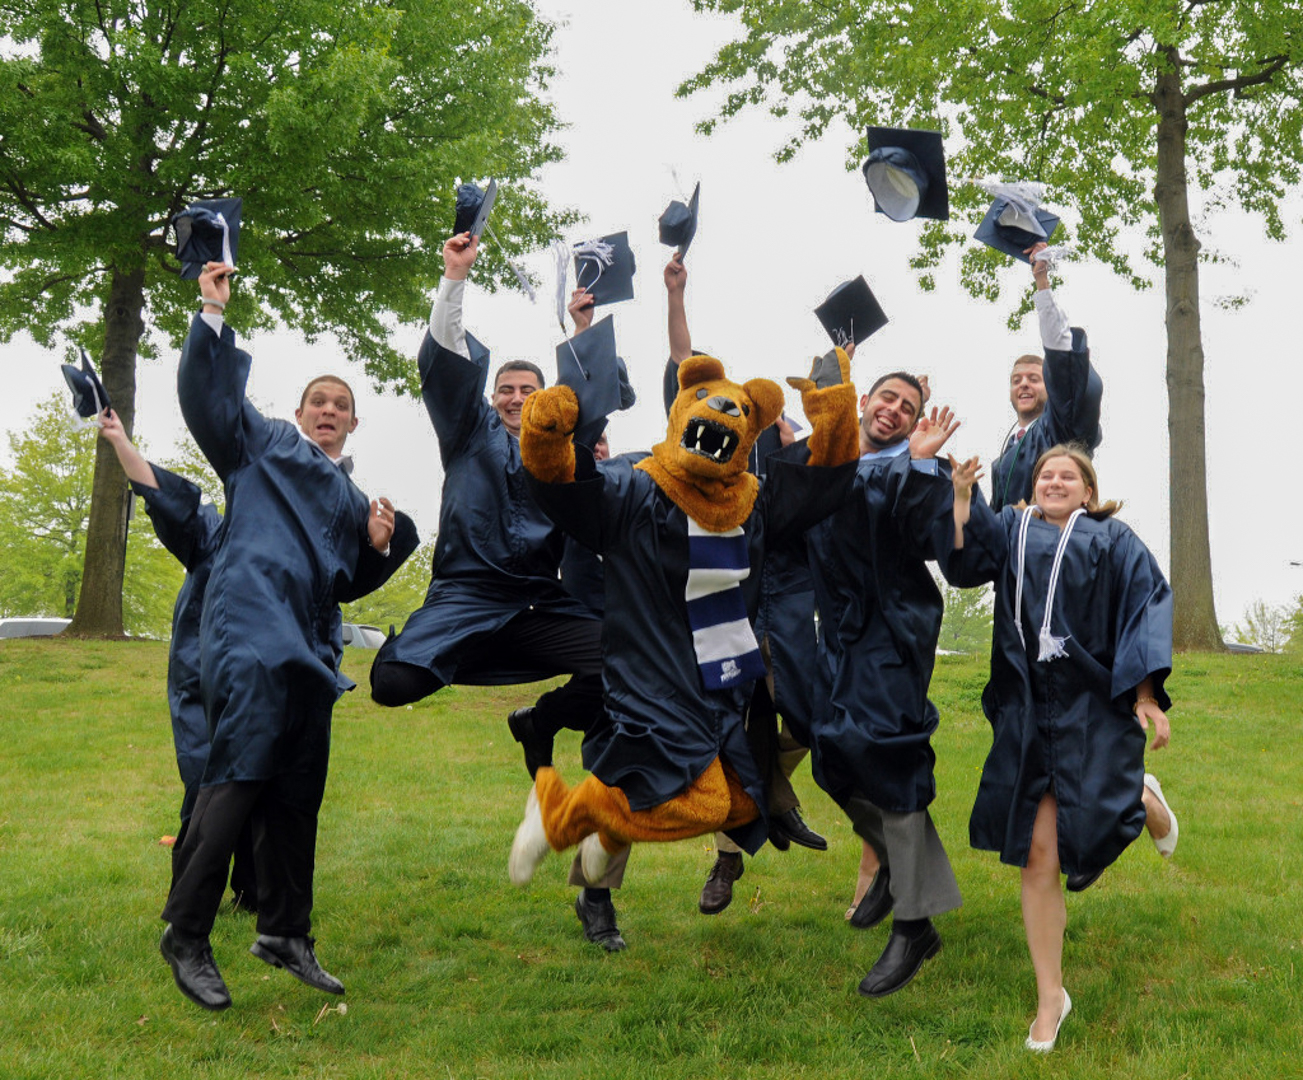 A group of graduating students in caps & gowns jump in the air in front of the Nittany Lion shrine